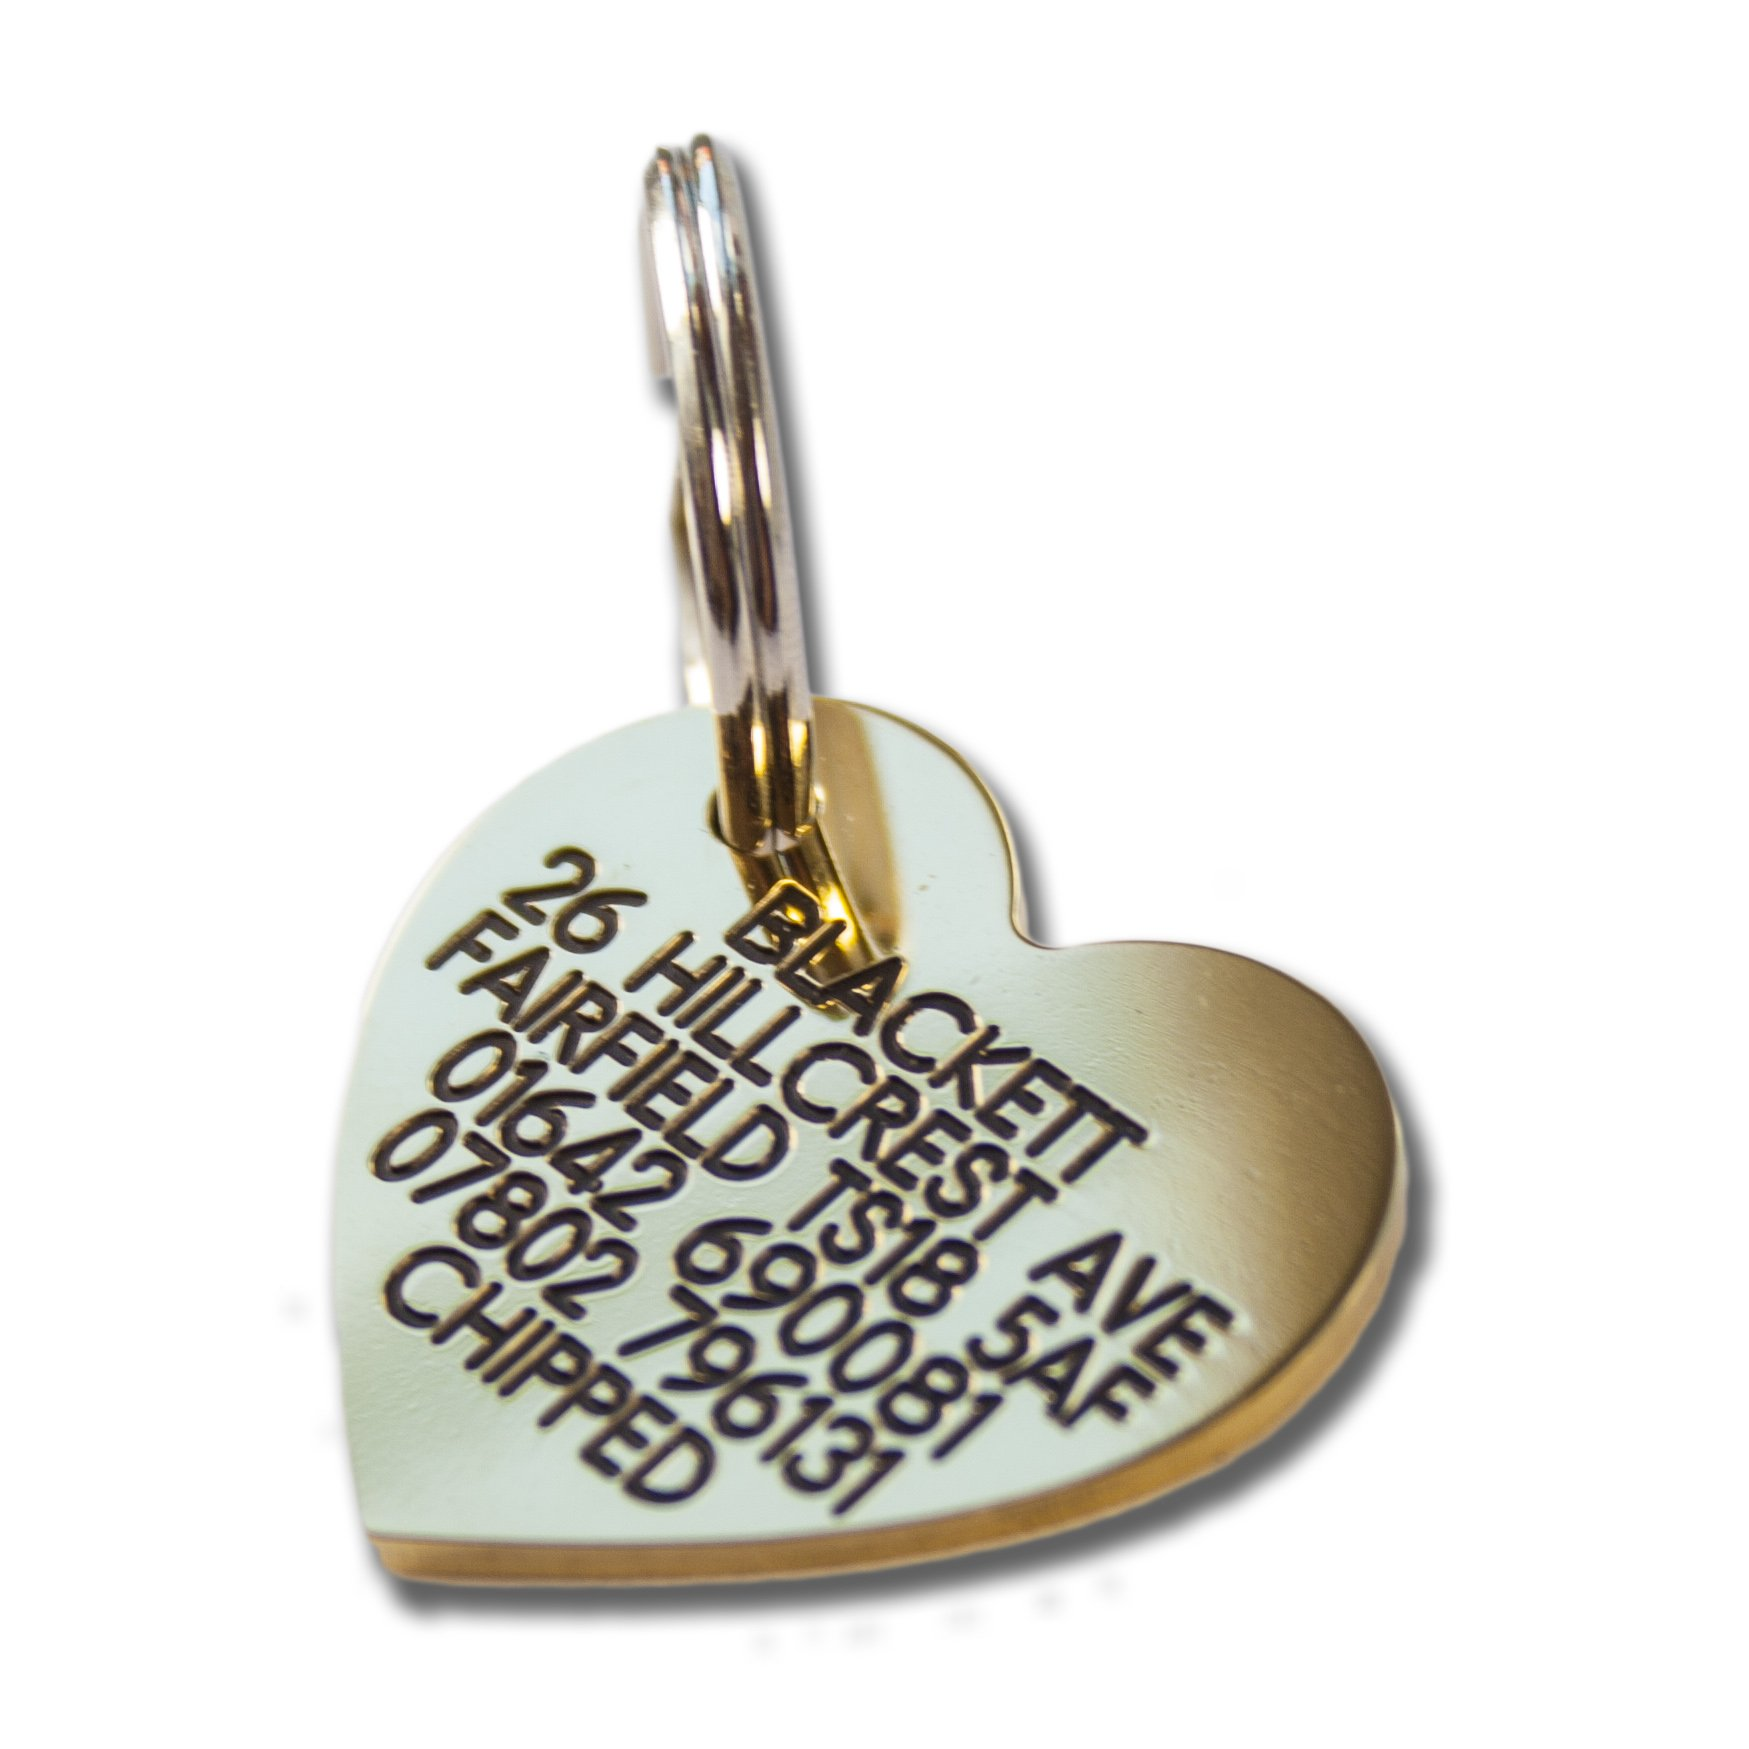 Deeply engraved solid brass heart shaped dog tag